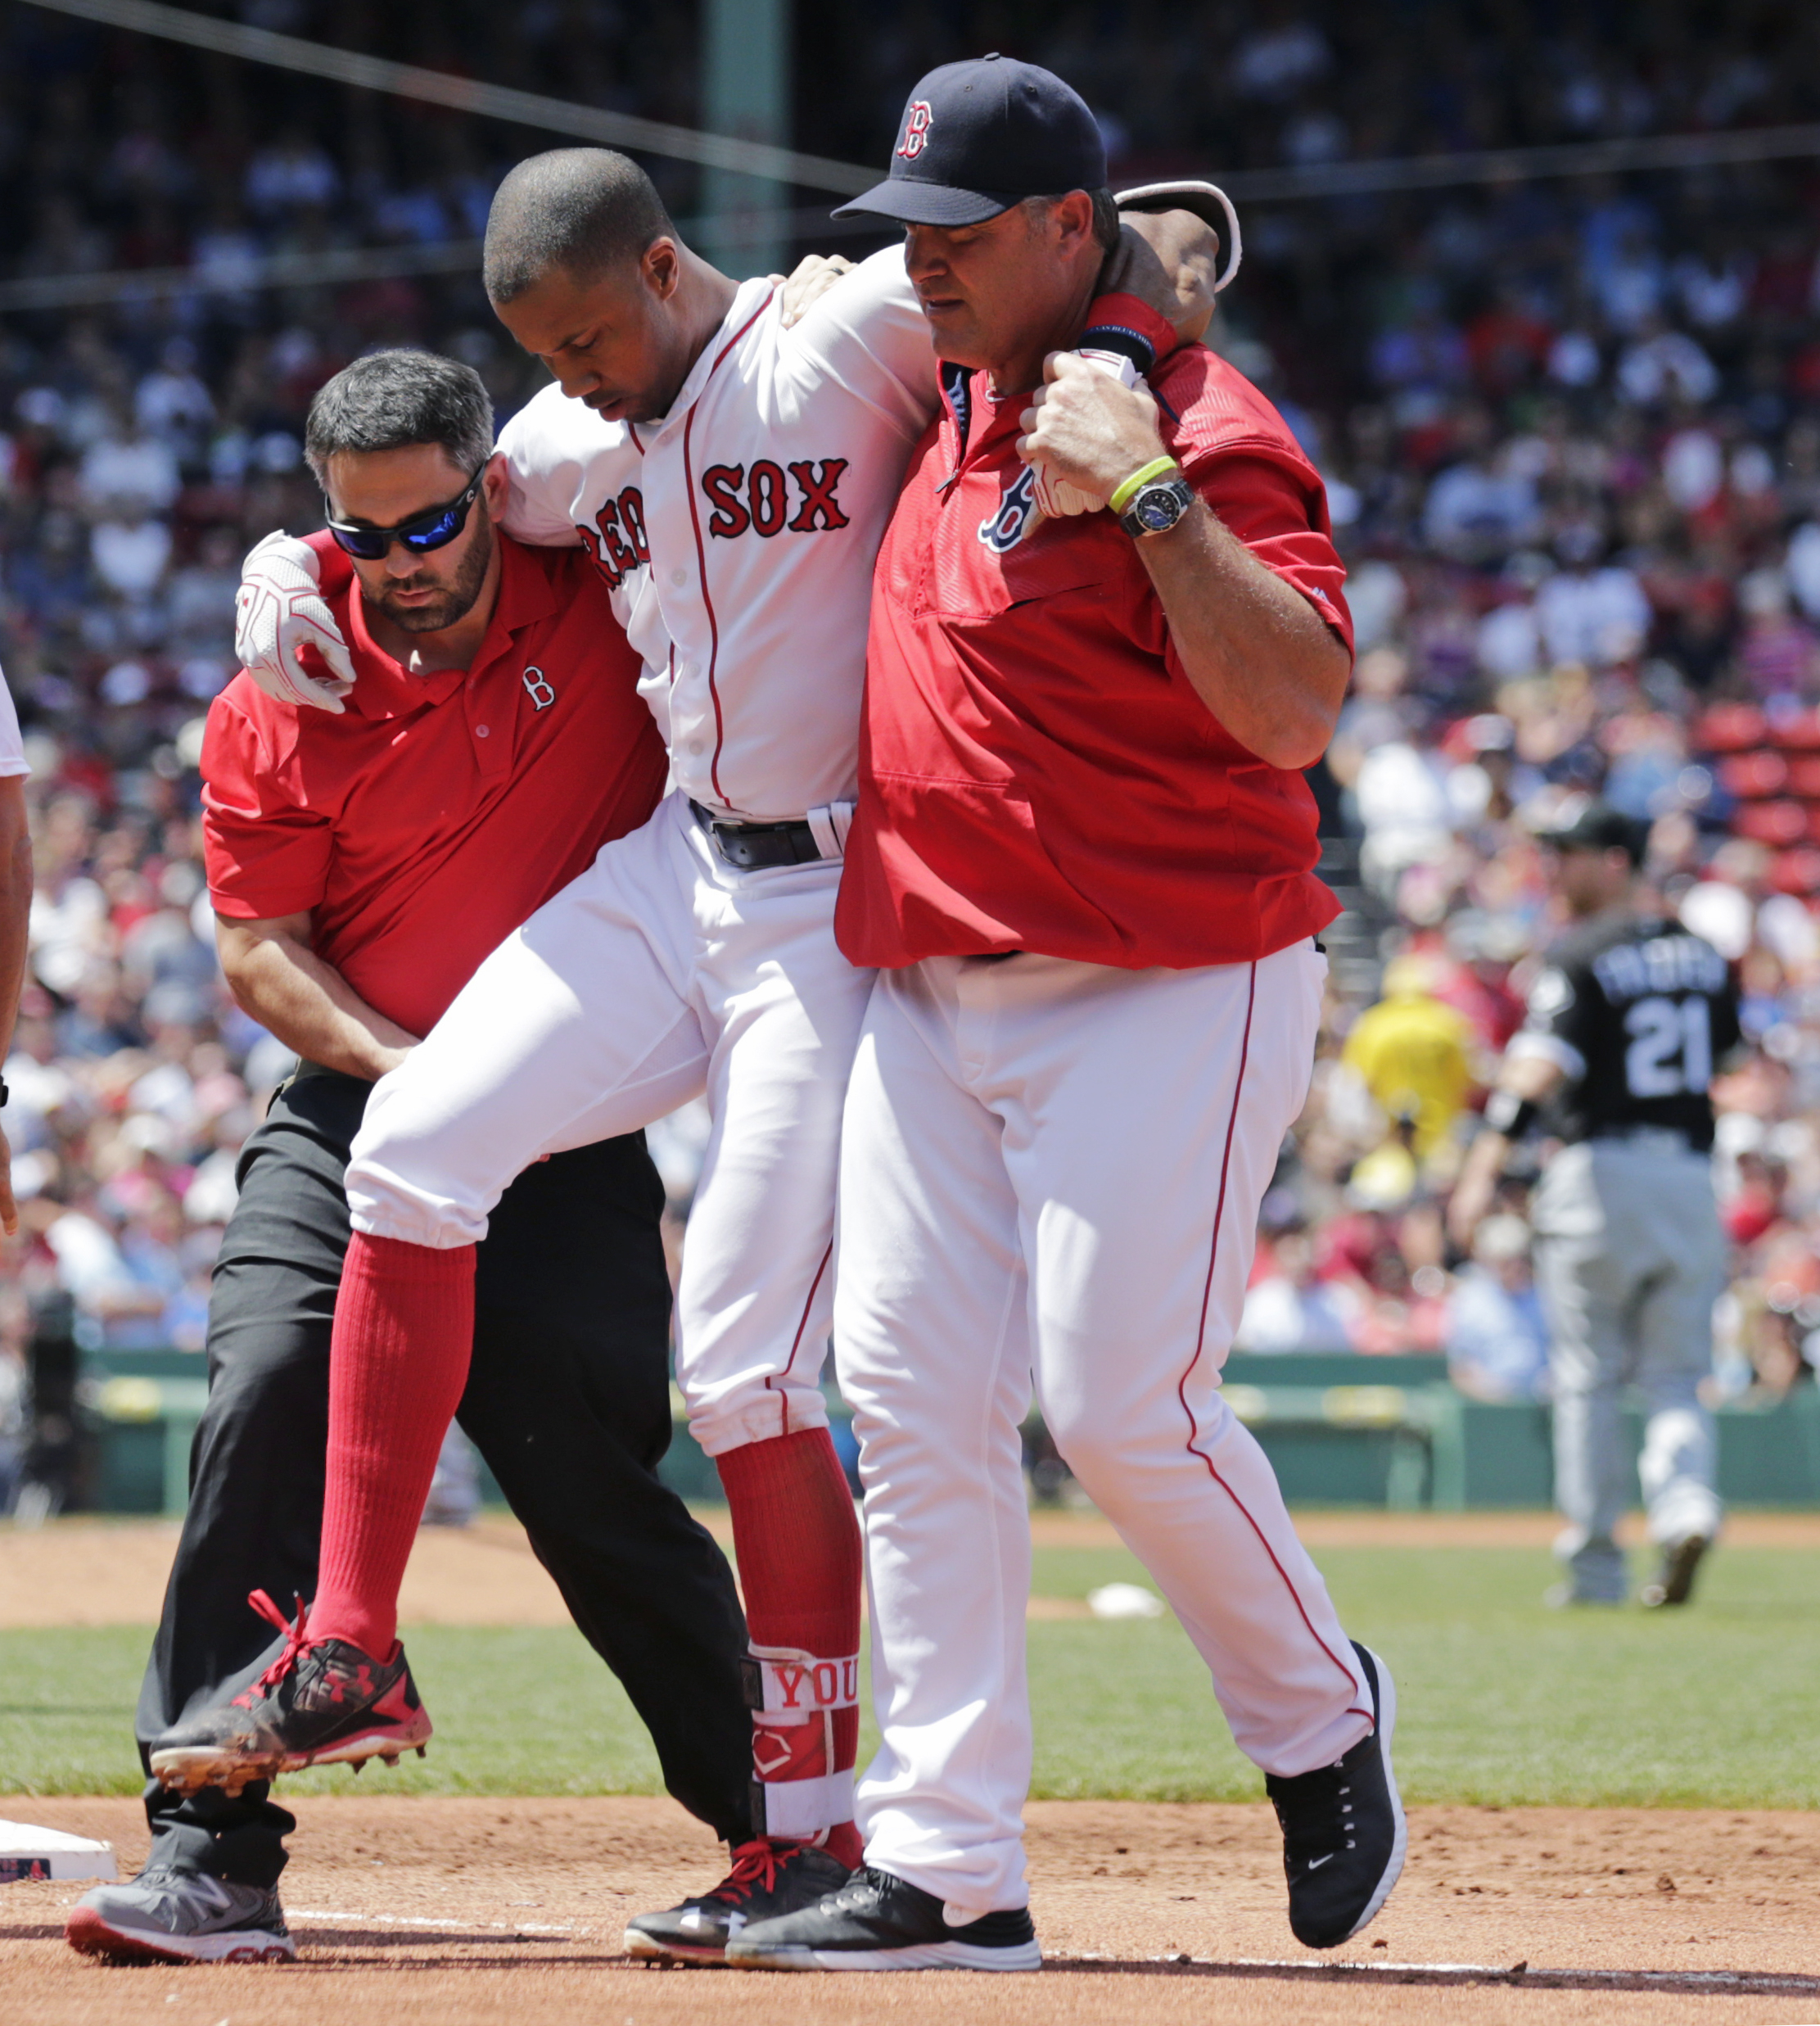 Boston Red Sox's Chris Young, center, is helped off the field by manager John Farrell, right, and trainer Brad Pearson after an apparent injury to his right leg caused while rounding first base during the second inning of a baseball game against the Chica